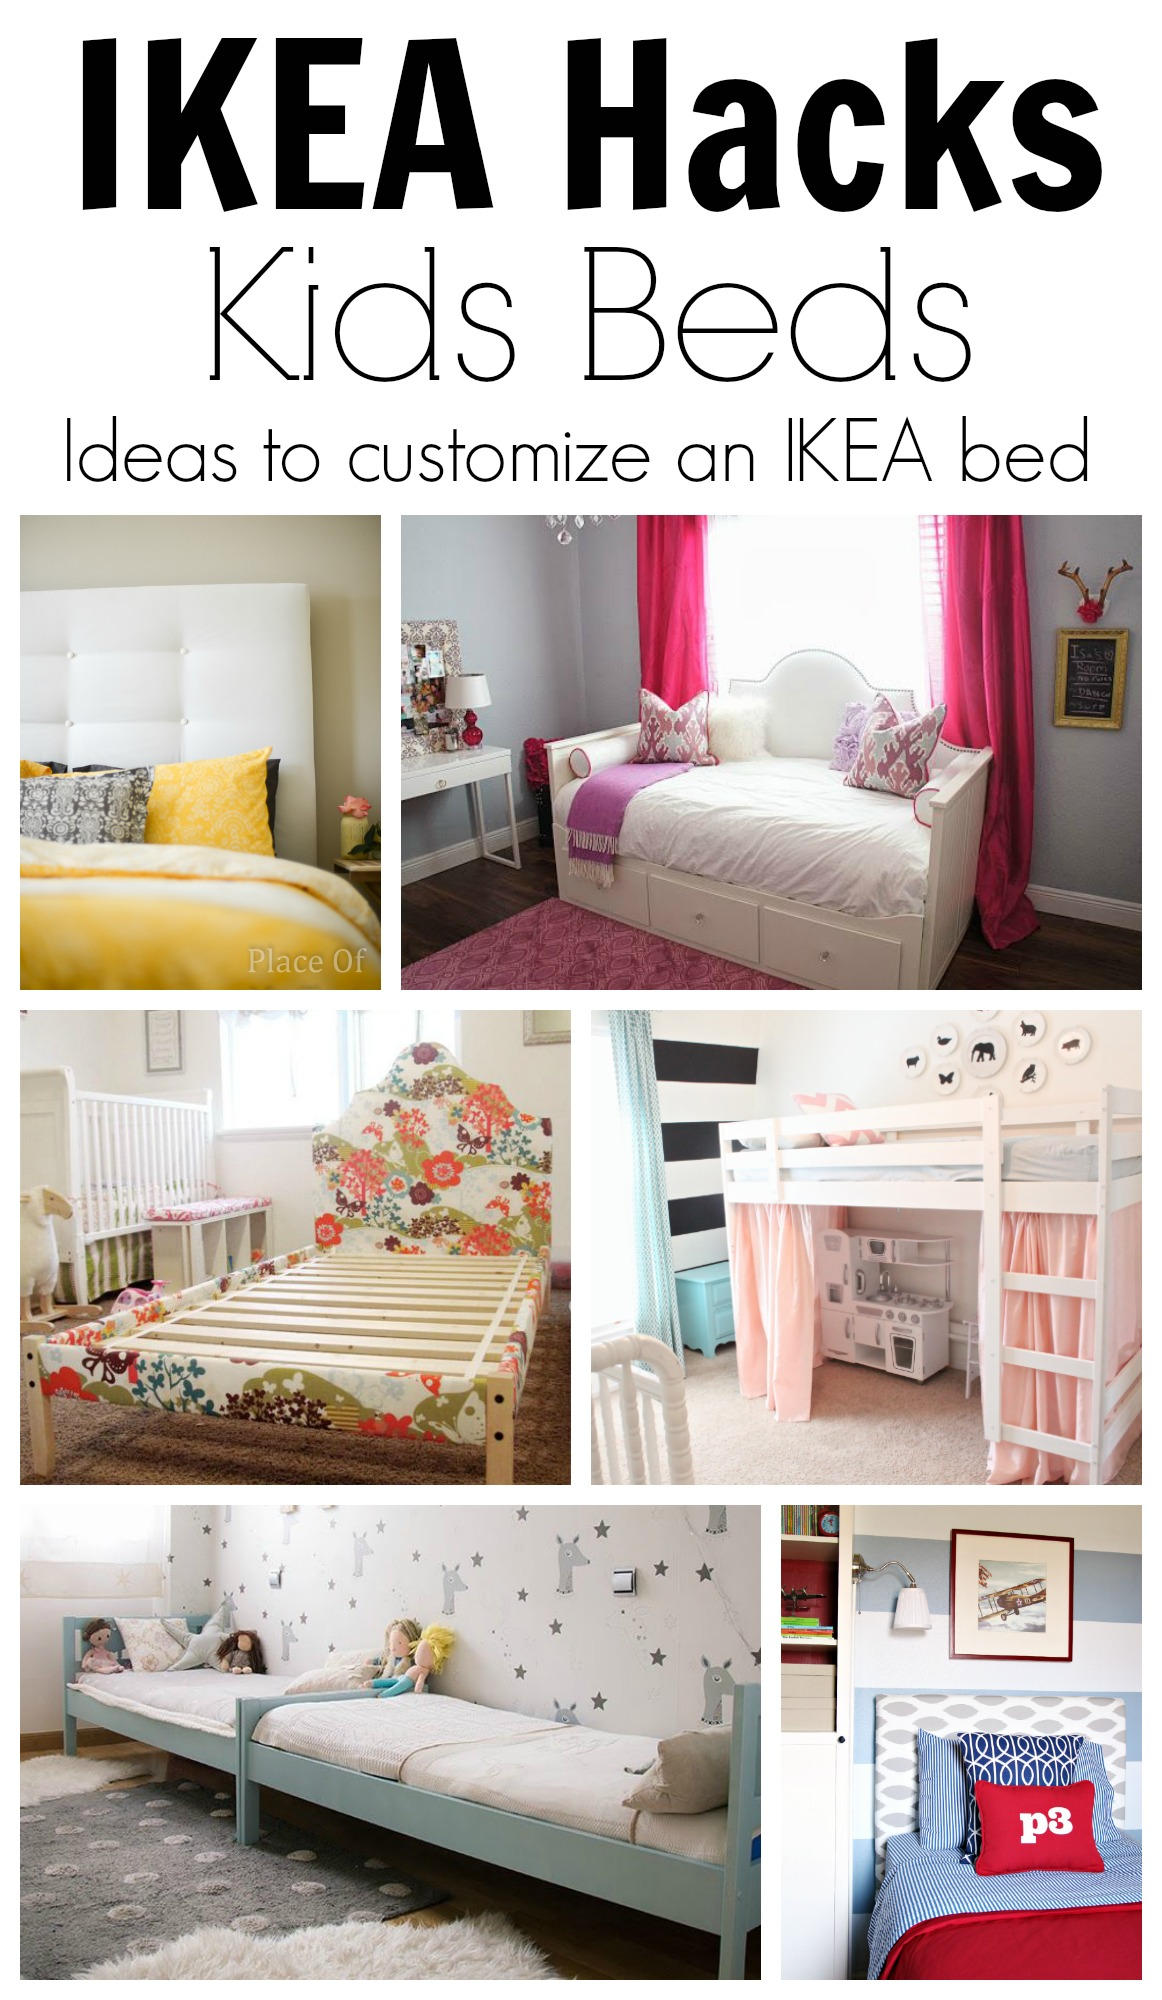 ikea hack ideas to customize kids beds. Black Bedroom Furniture Sets. Home Design Ideas